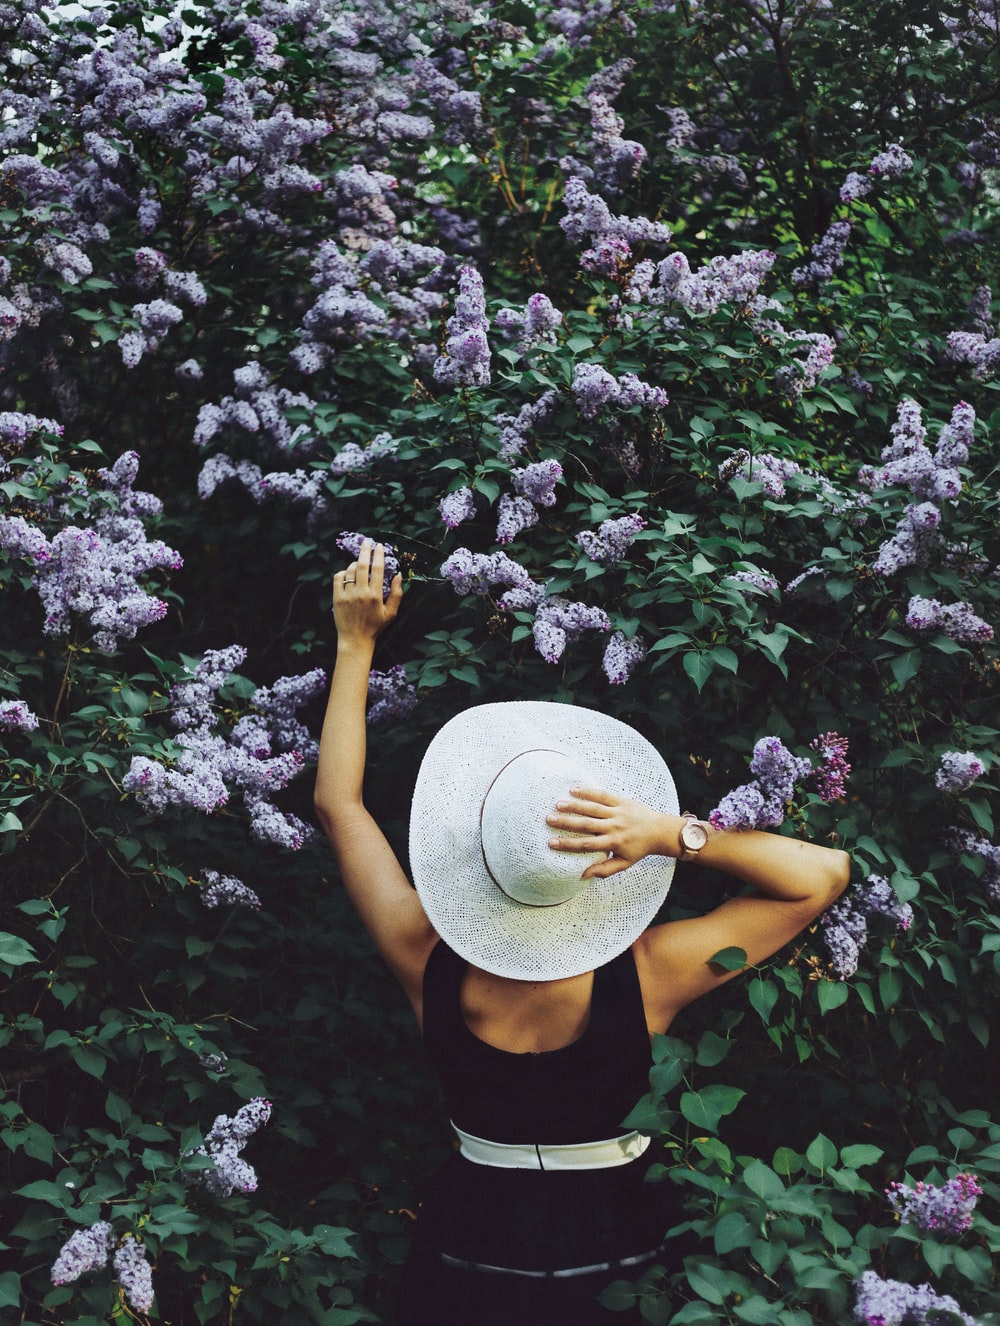 woman wearing black sleeveless top and holding hat and surrounded purple flowers